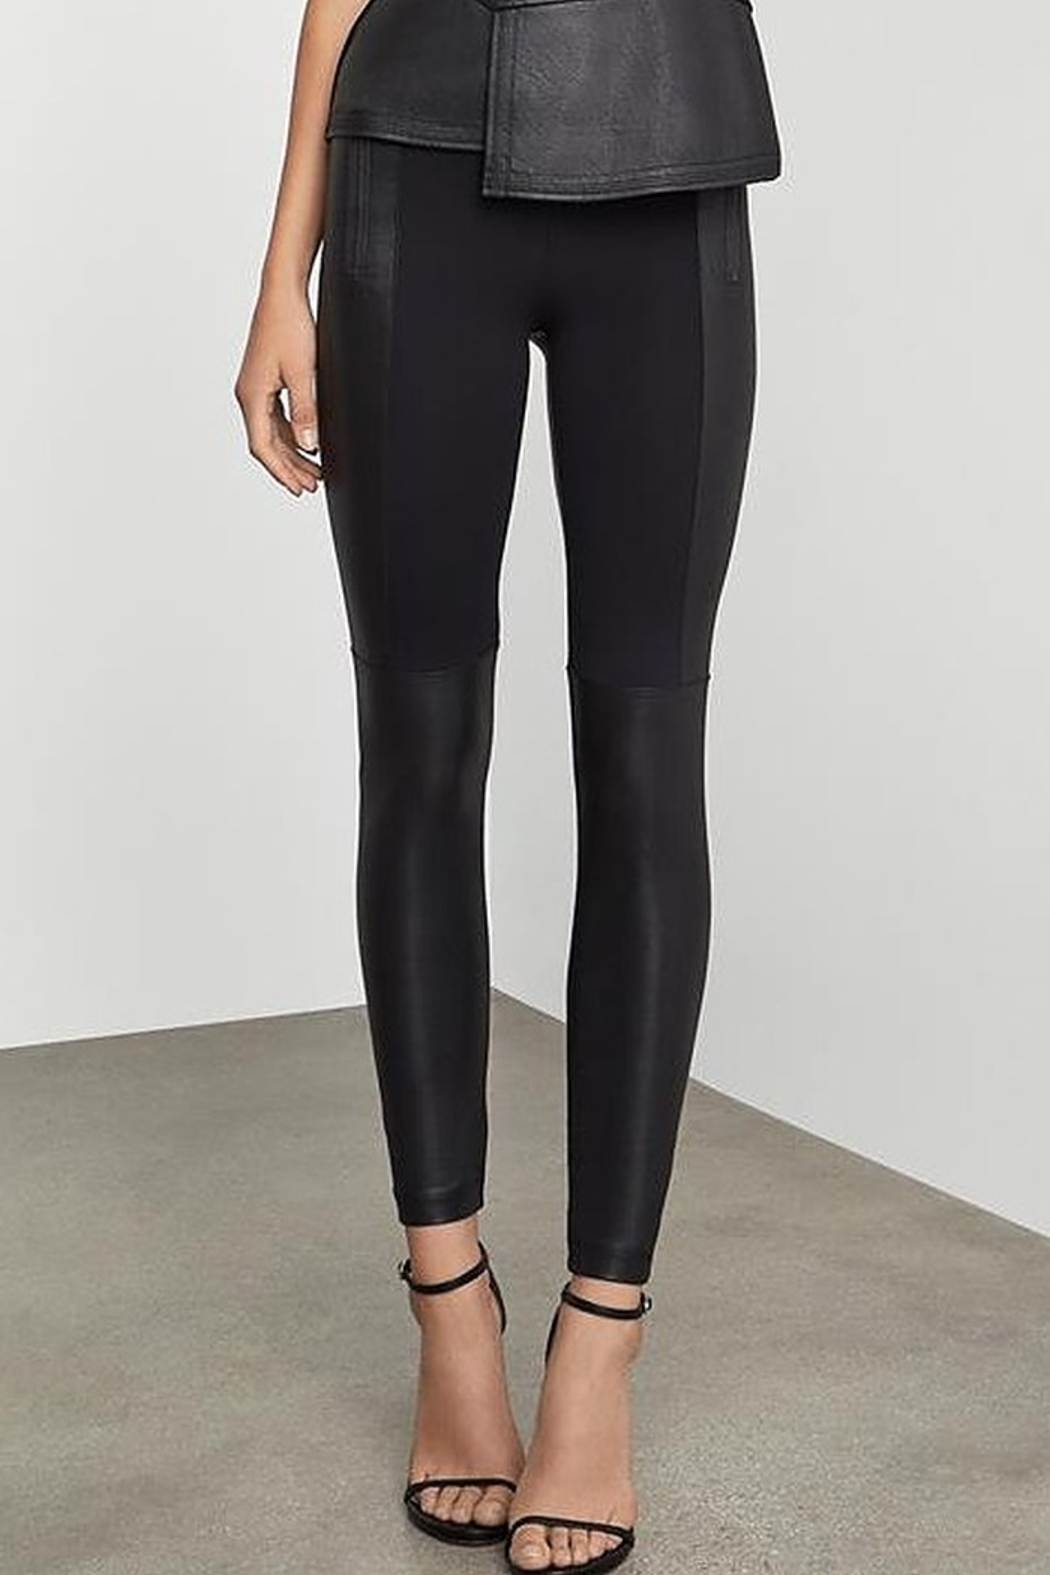 BCBG Max Azria Two Tone Coated Leggings - Side Cropped Image